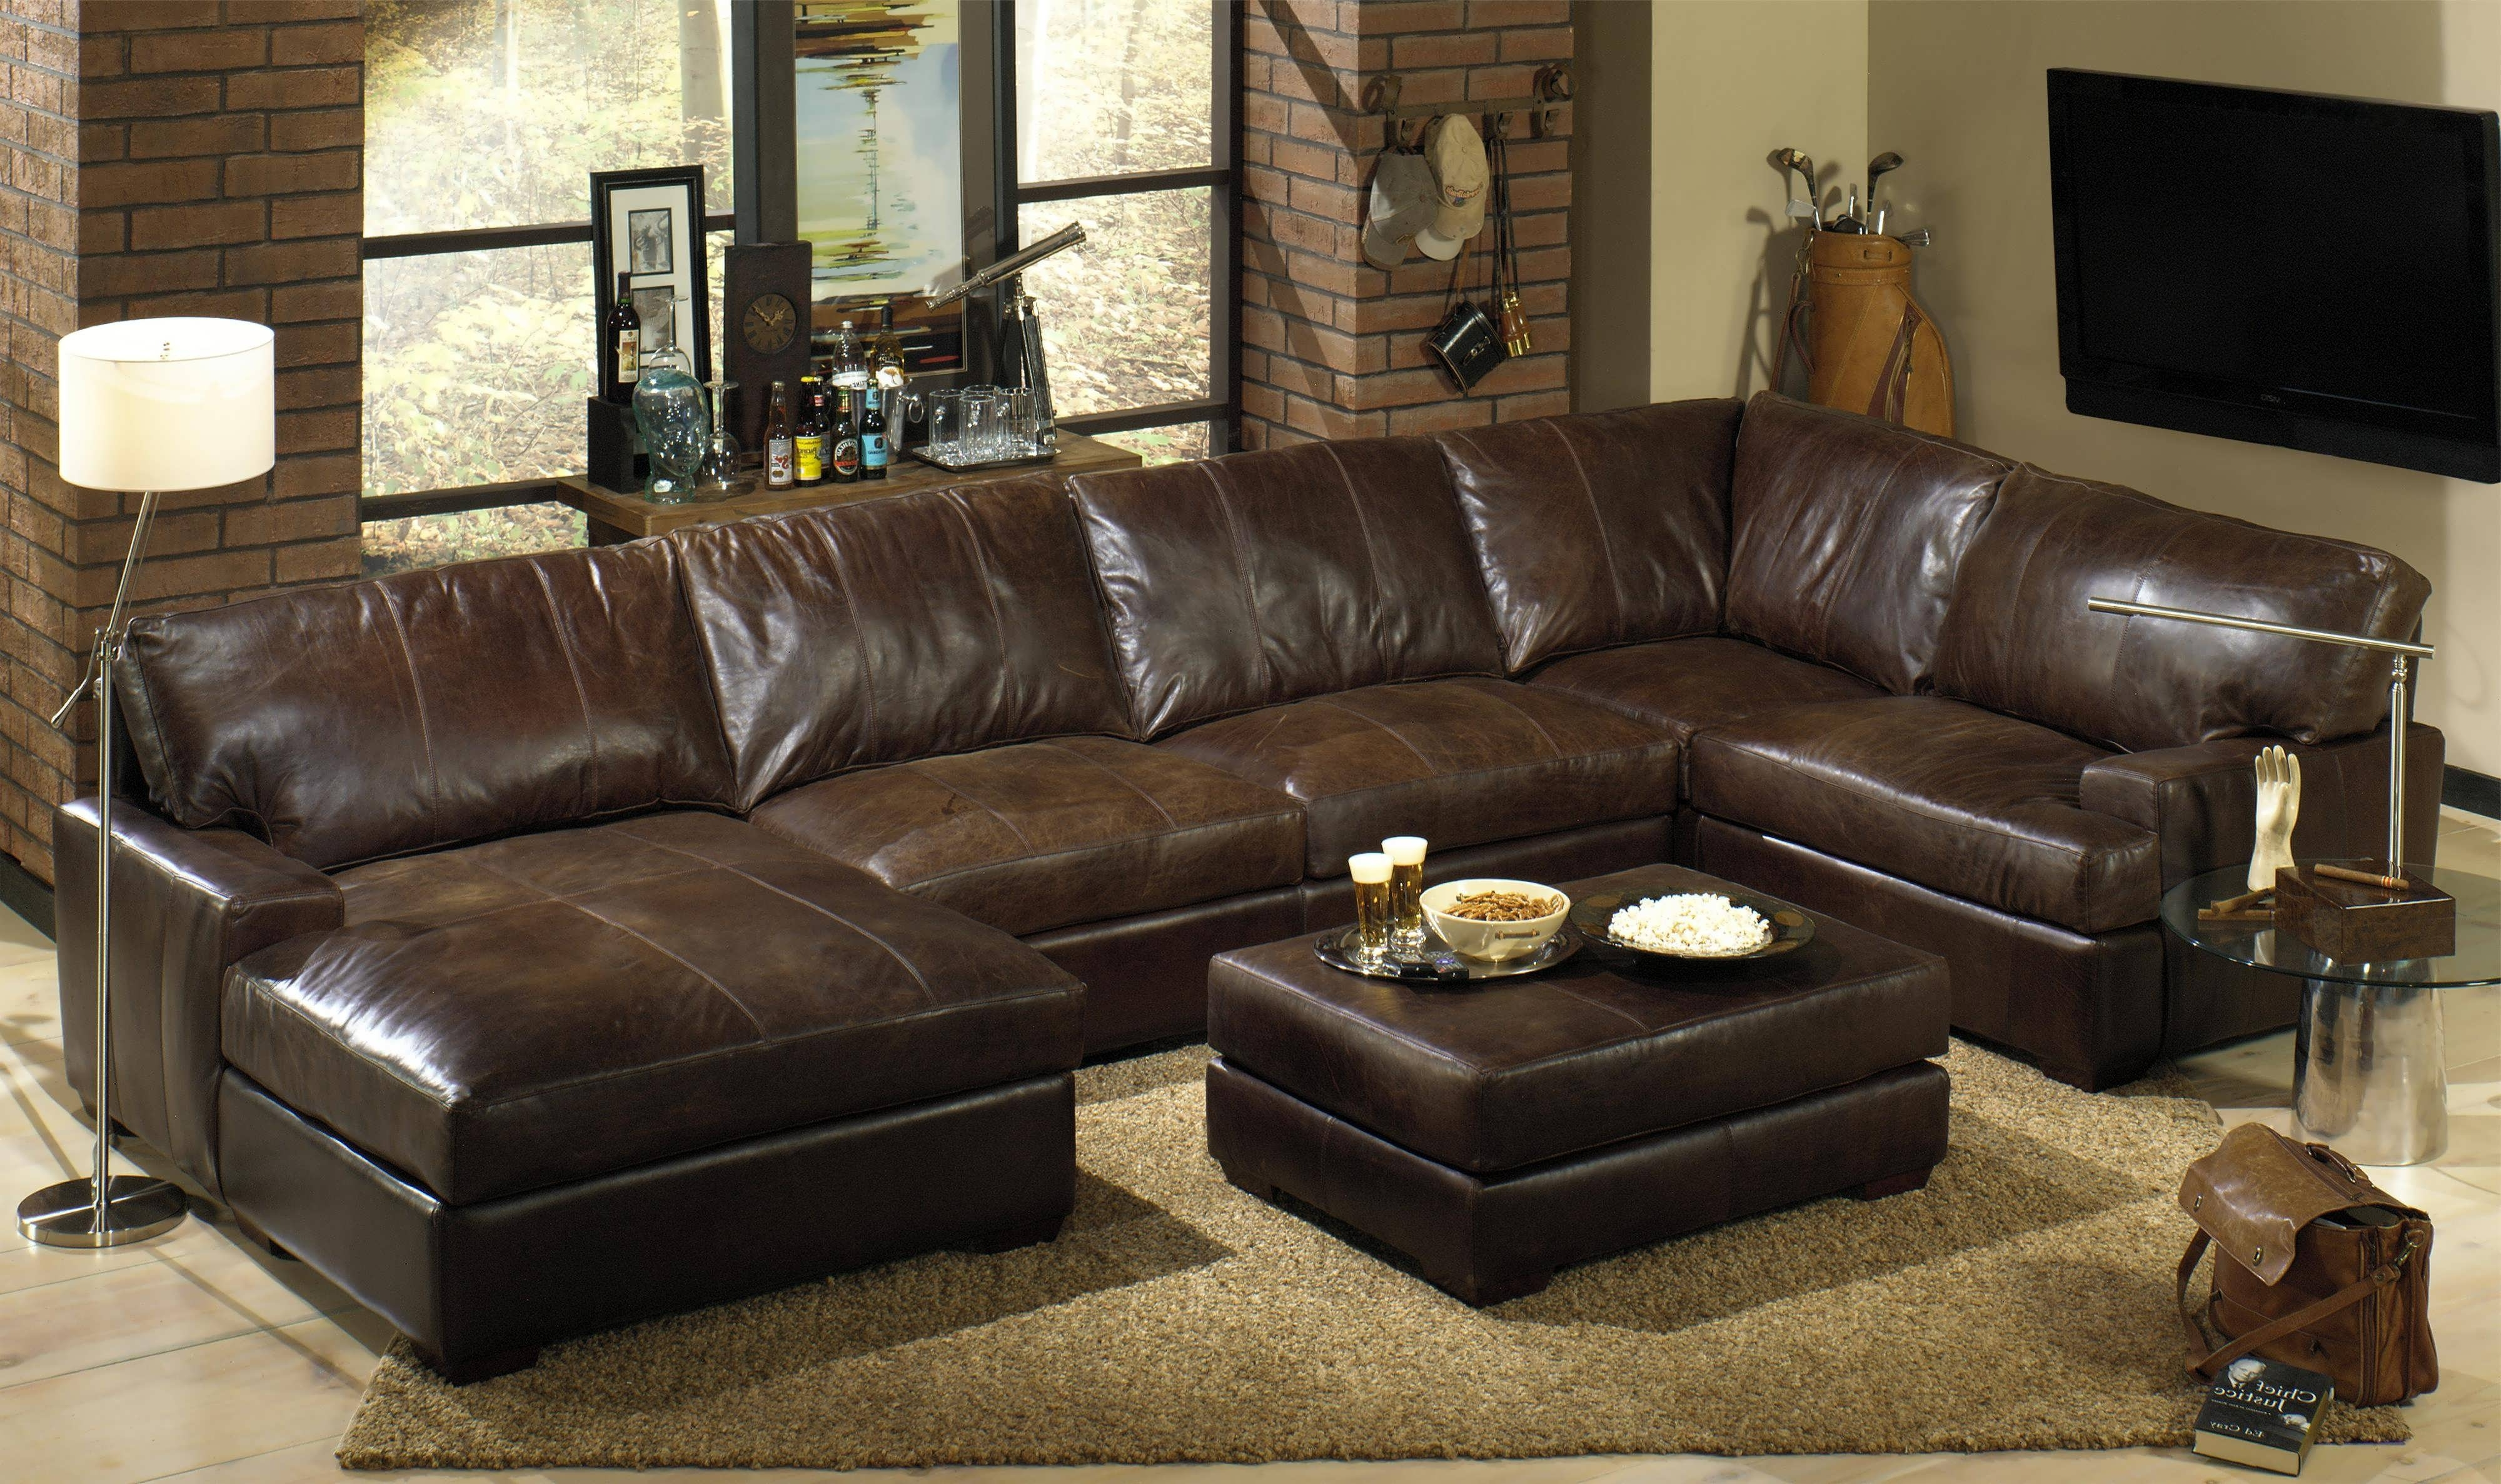 Best and Newest Sofa : Chaise Sofa Sectional With Chaise And Recliner White with Genuine Leather Sectionals With Chaise